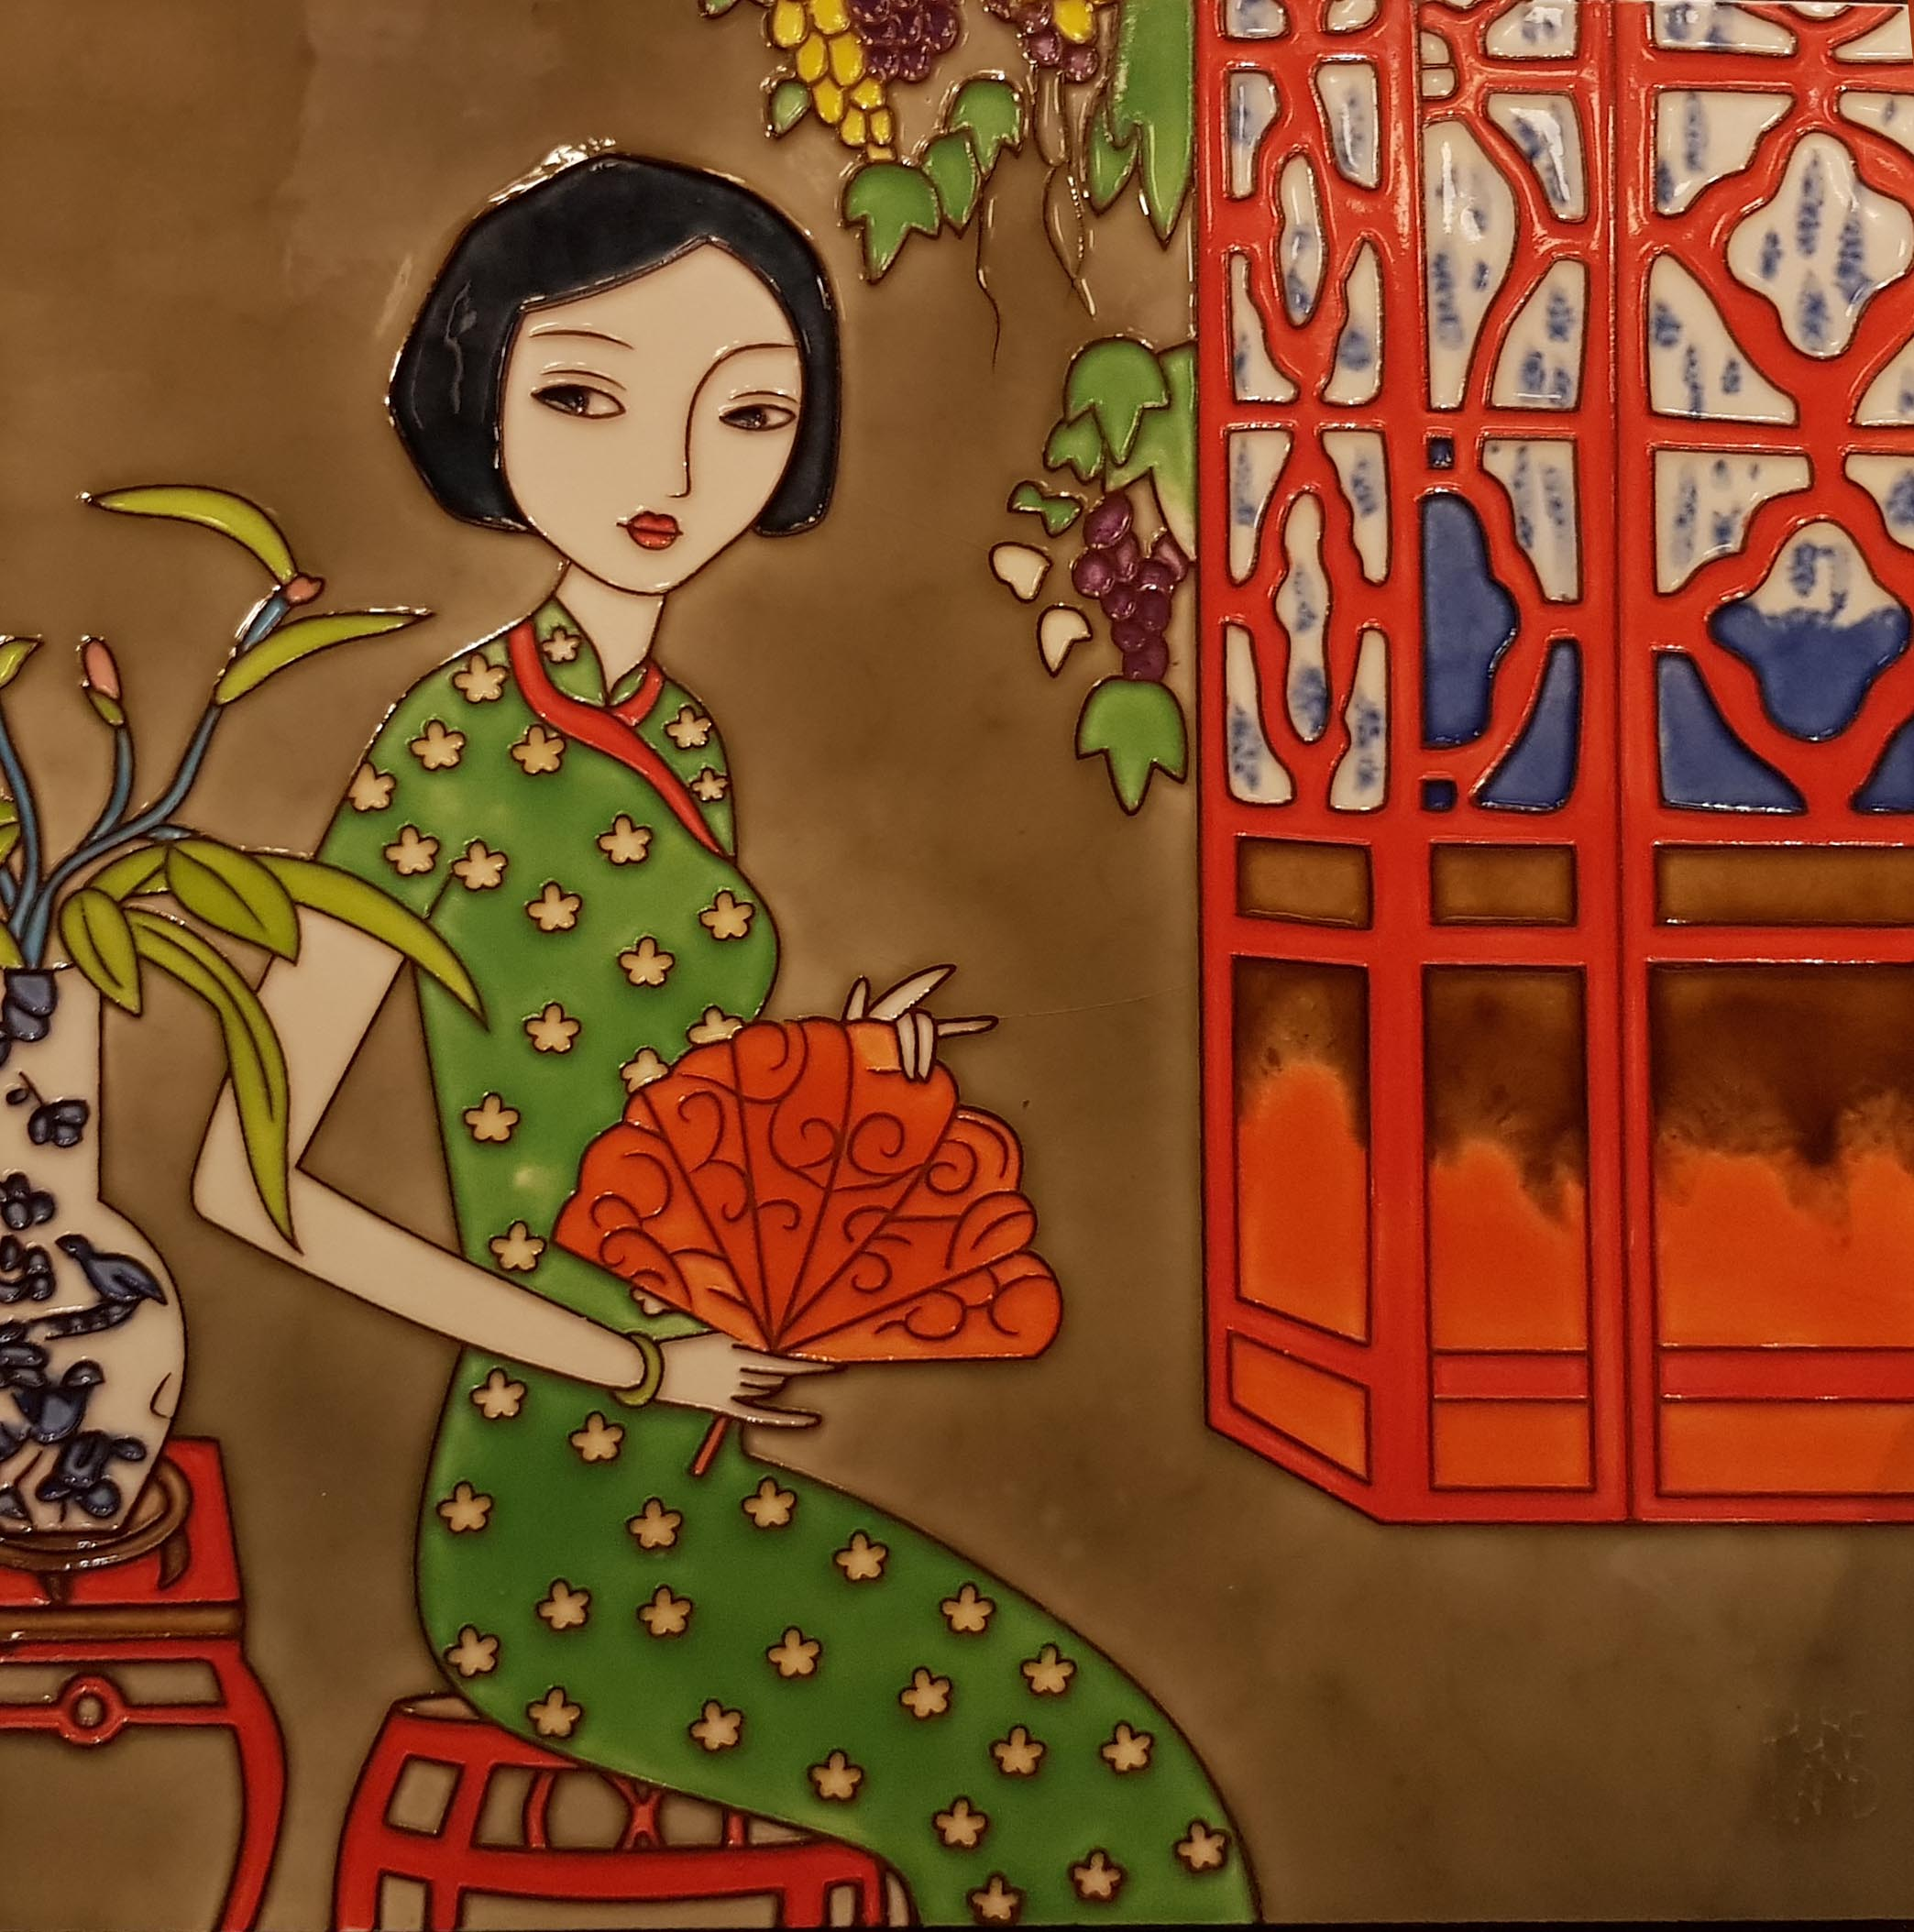 3847 Qipao and Fan (Collector's Edition) 30cm x 30cm Ceramic Tile